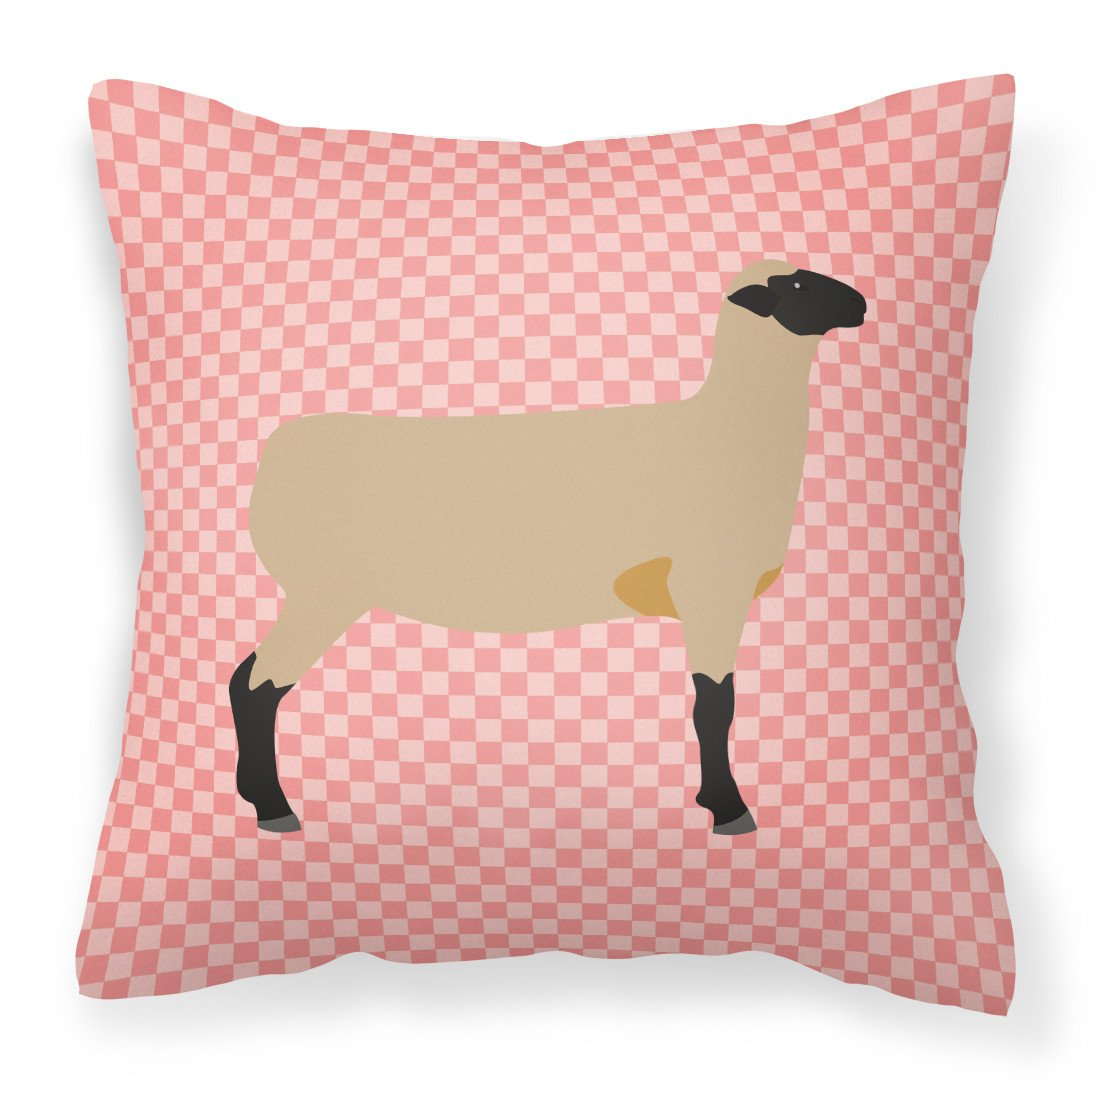 Hampshire Down Sheep Pink Check Fabric Decorative Pillow BB7976PW1818 by Caroline's Treasures